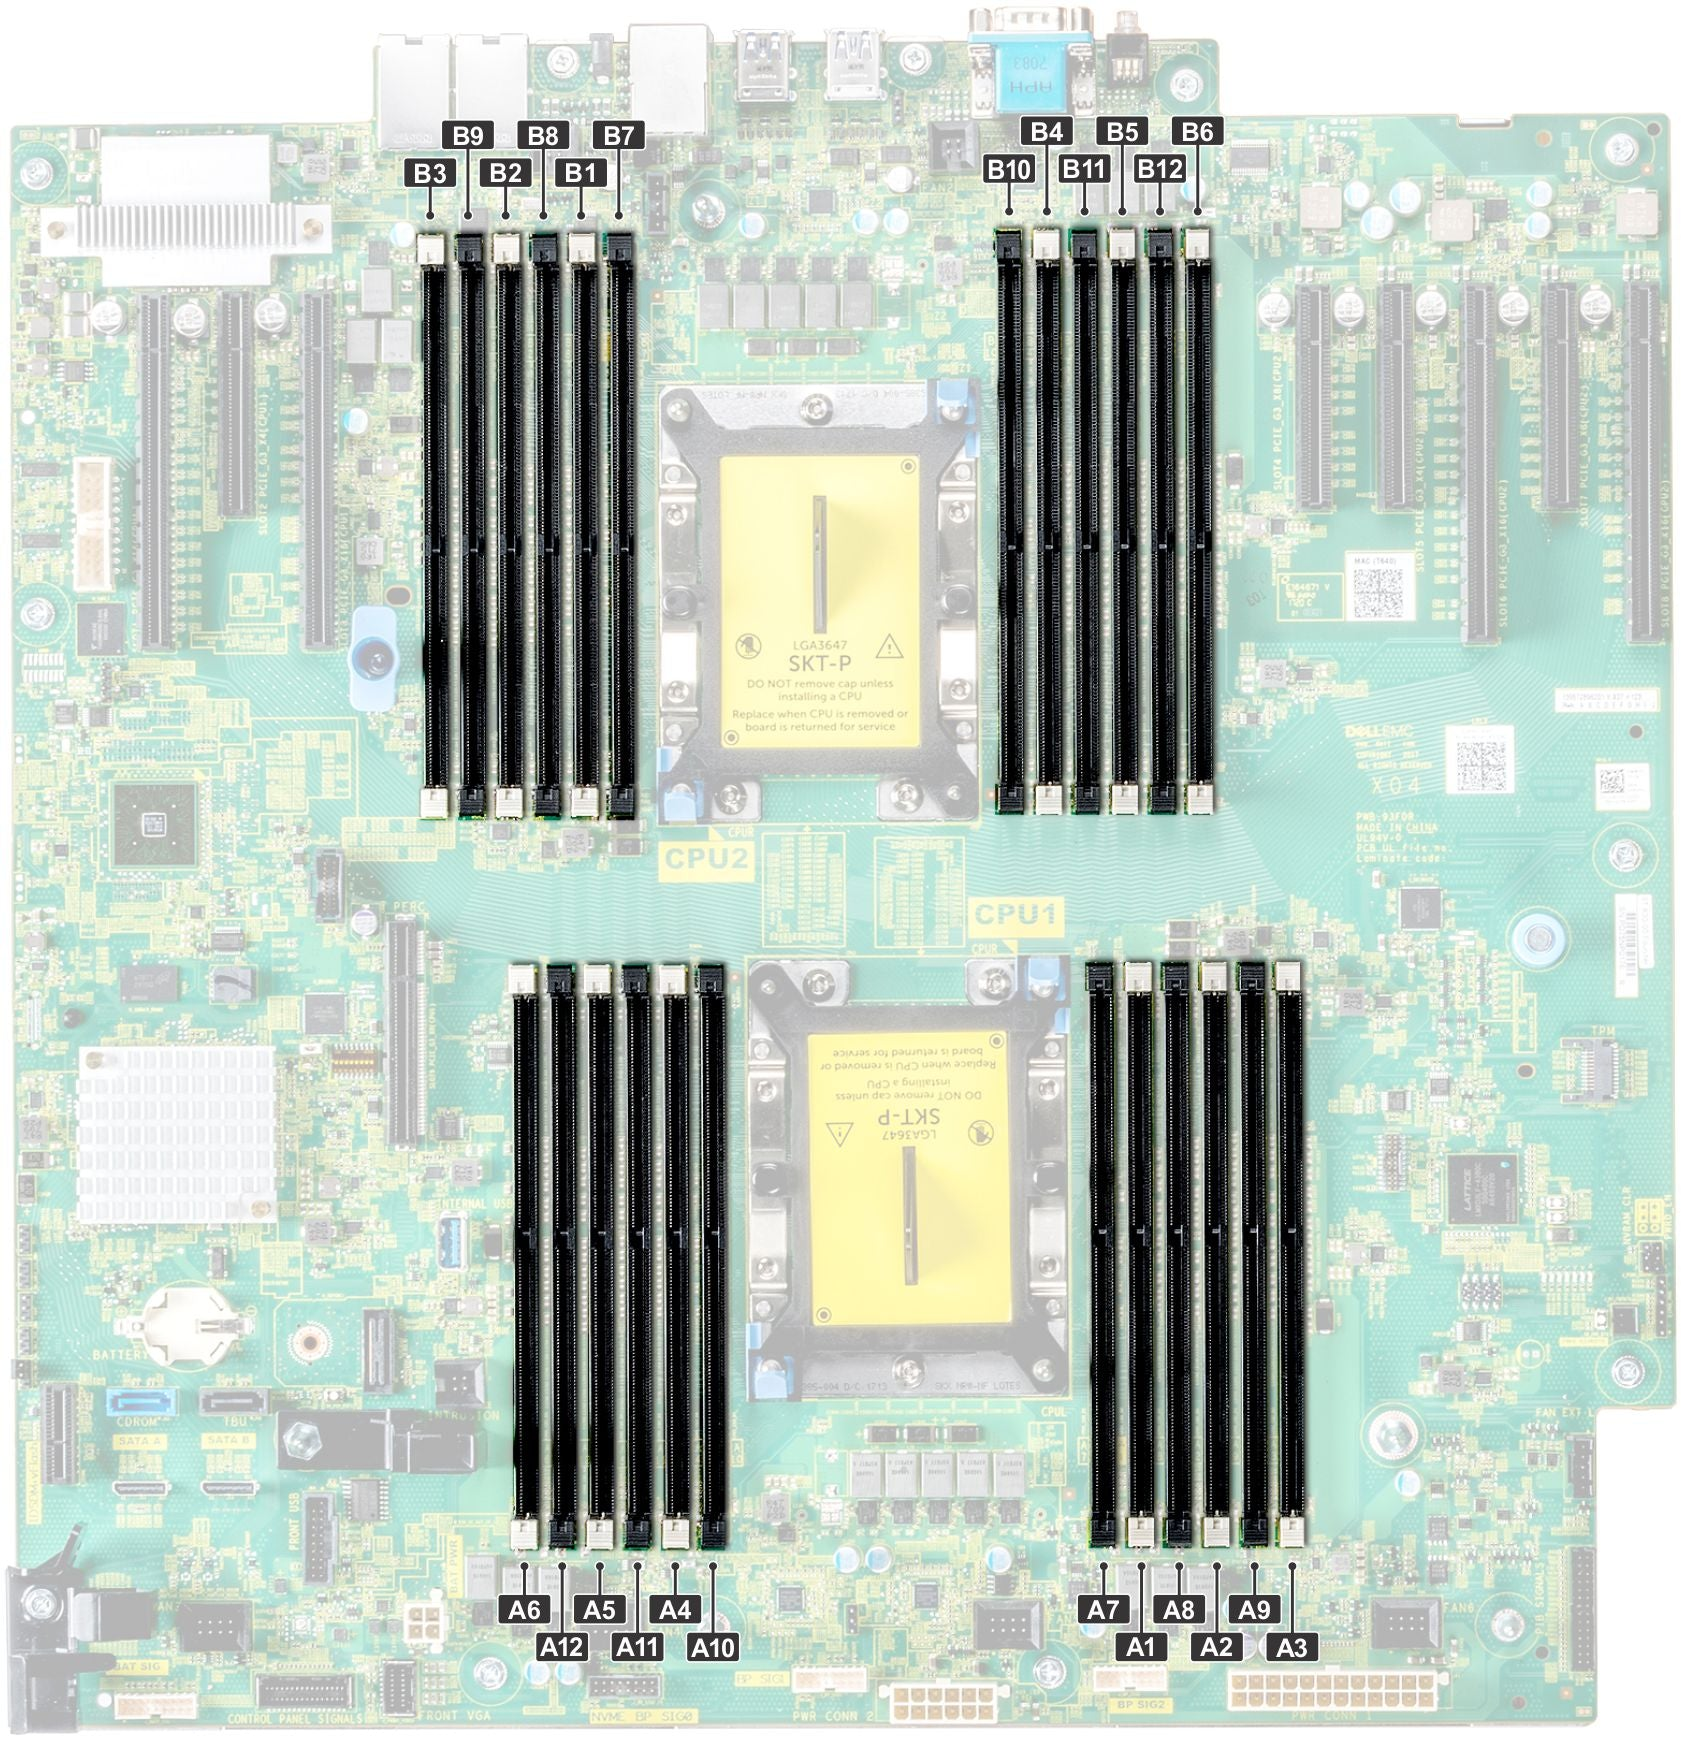 Dell PowerEdge T640 Memory Configuration